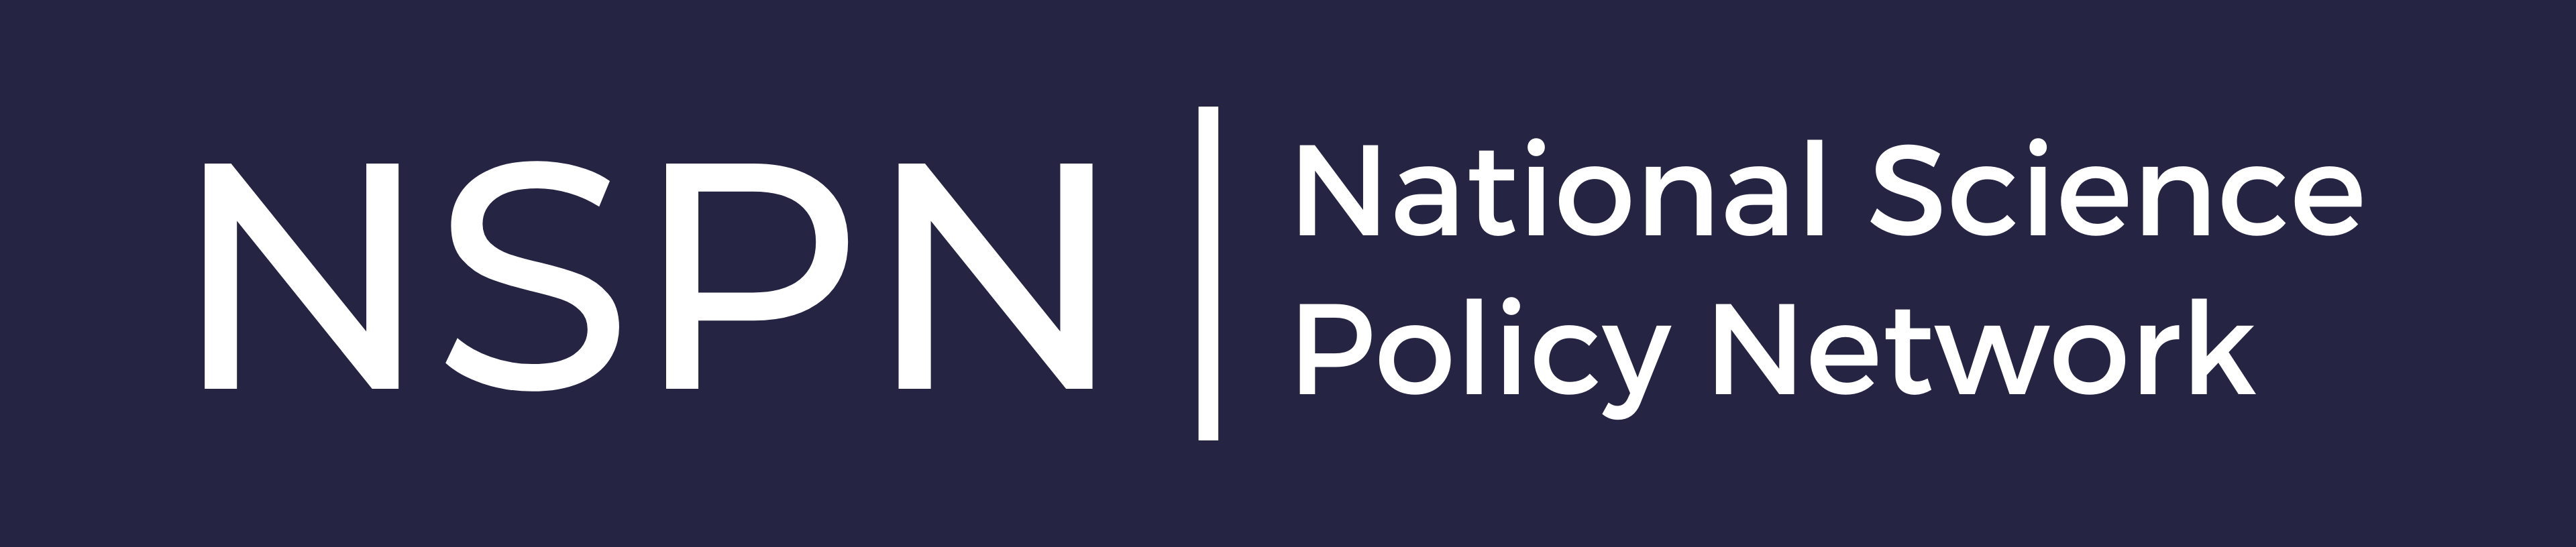 National Science Policy Network logo